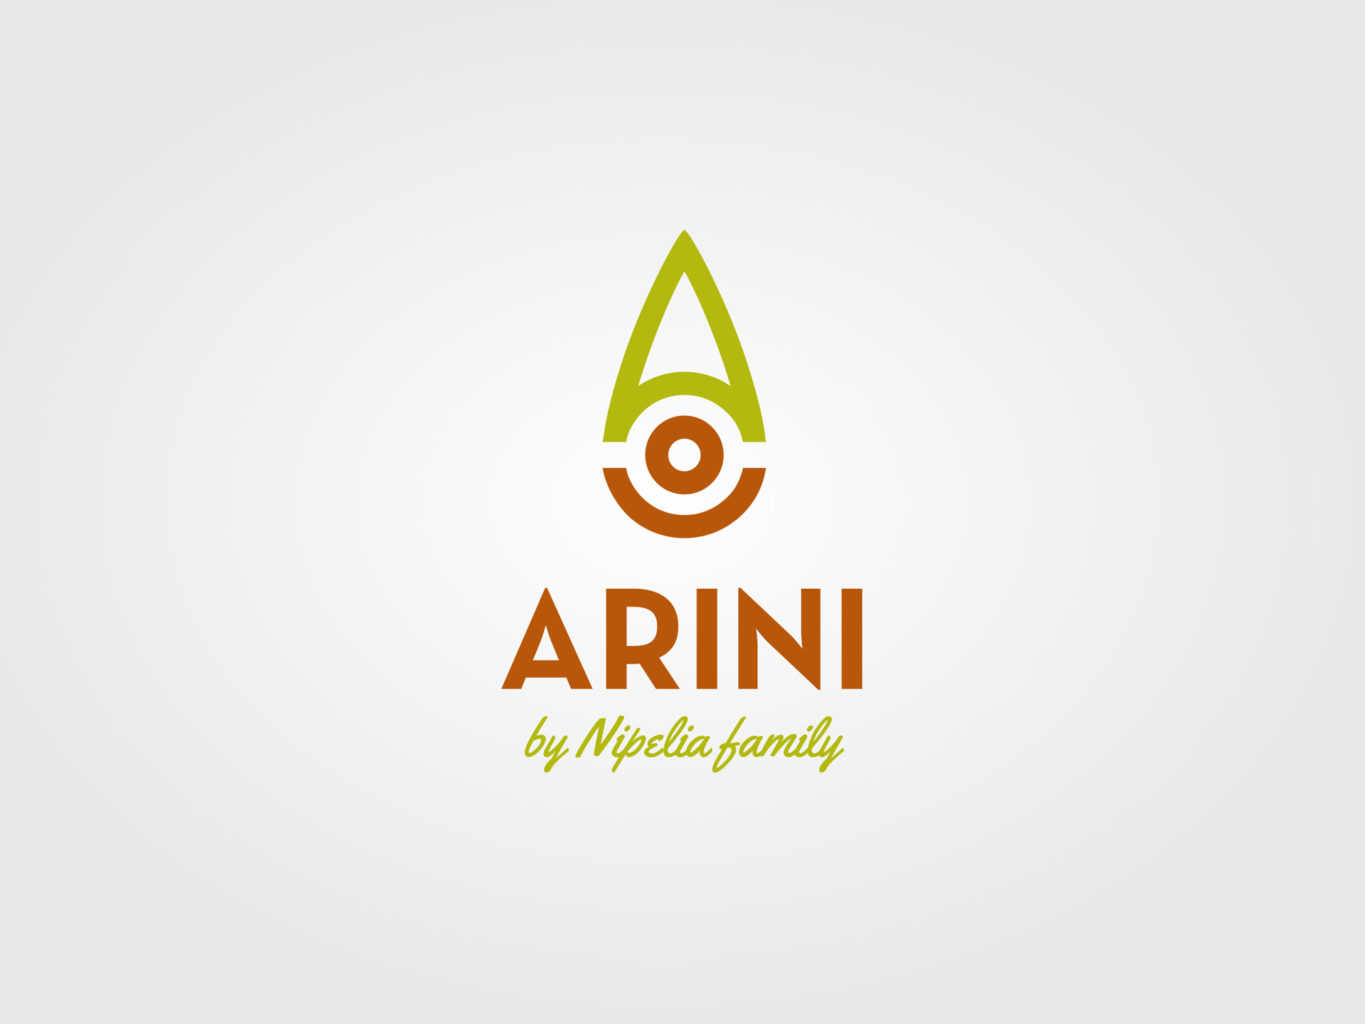 Arini Olive Oil logo by fiftyeggz